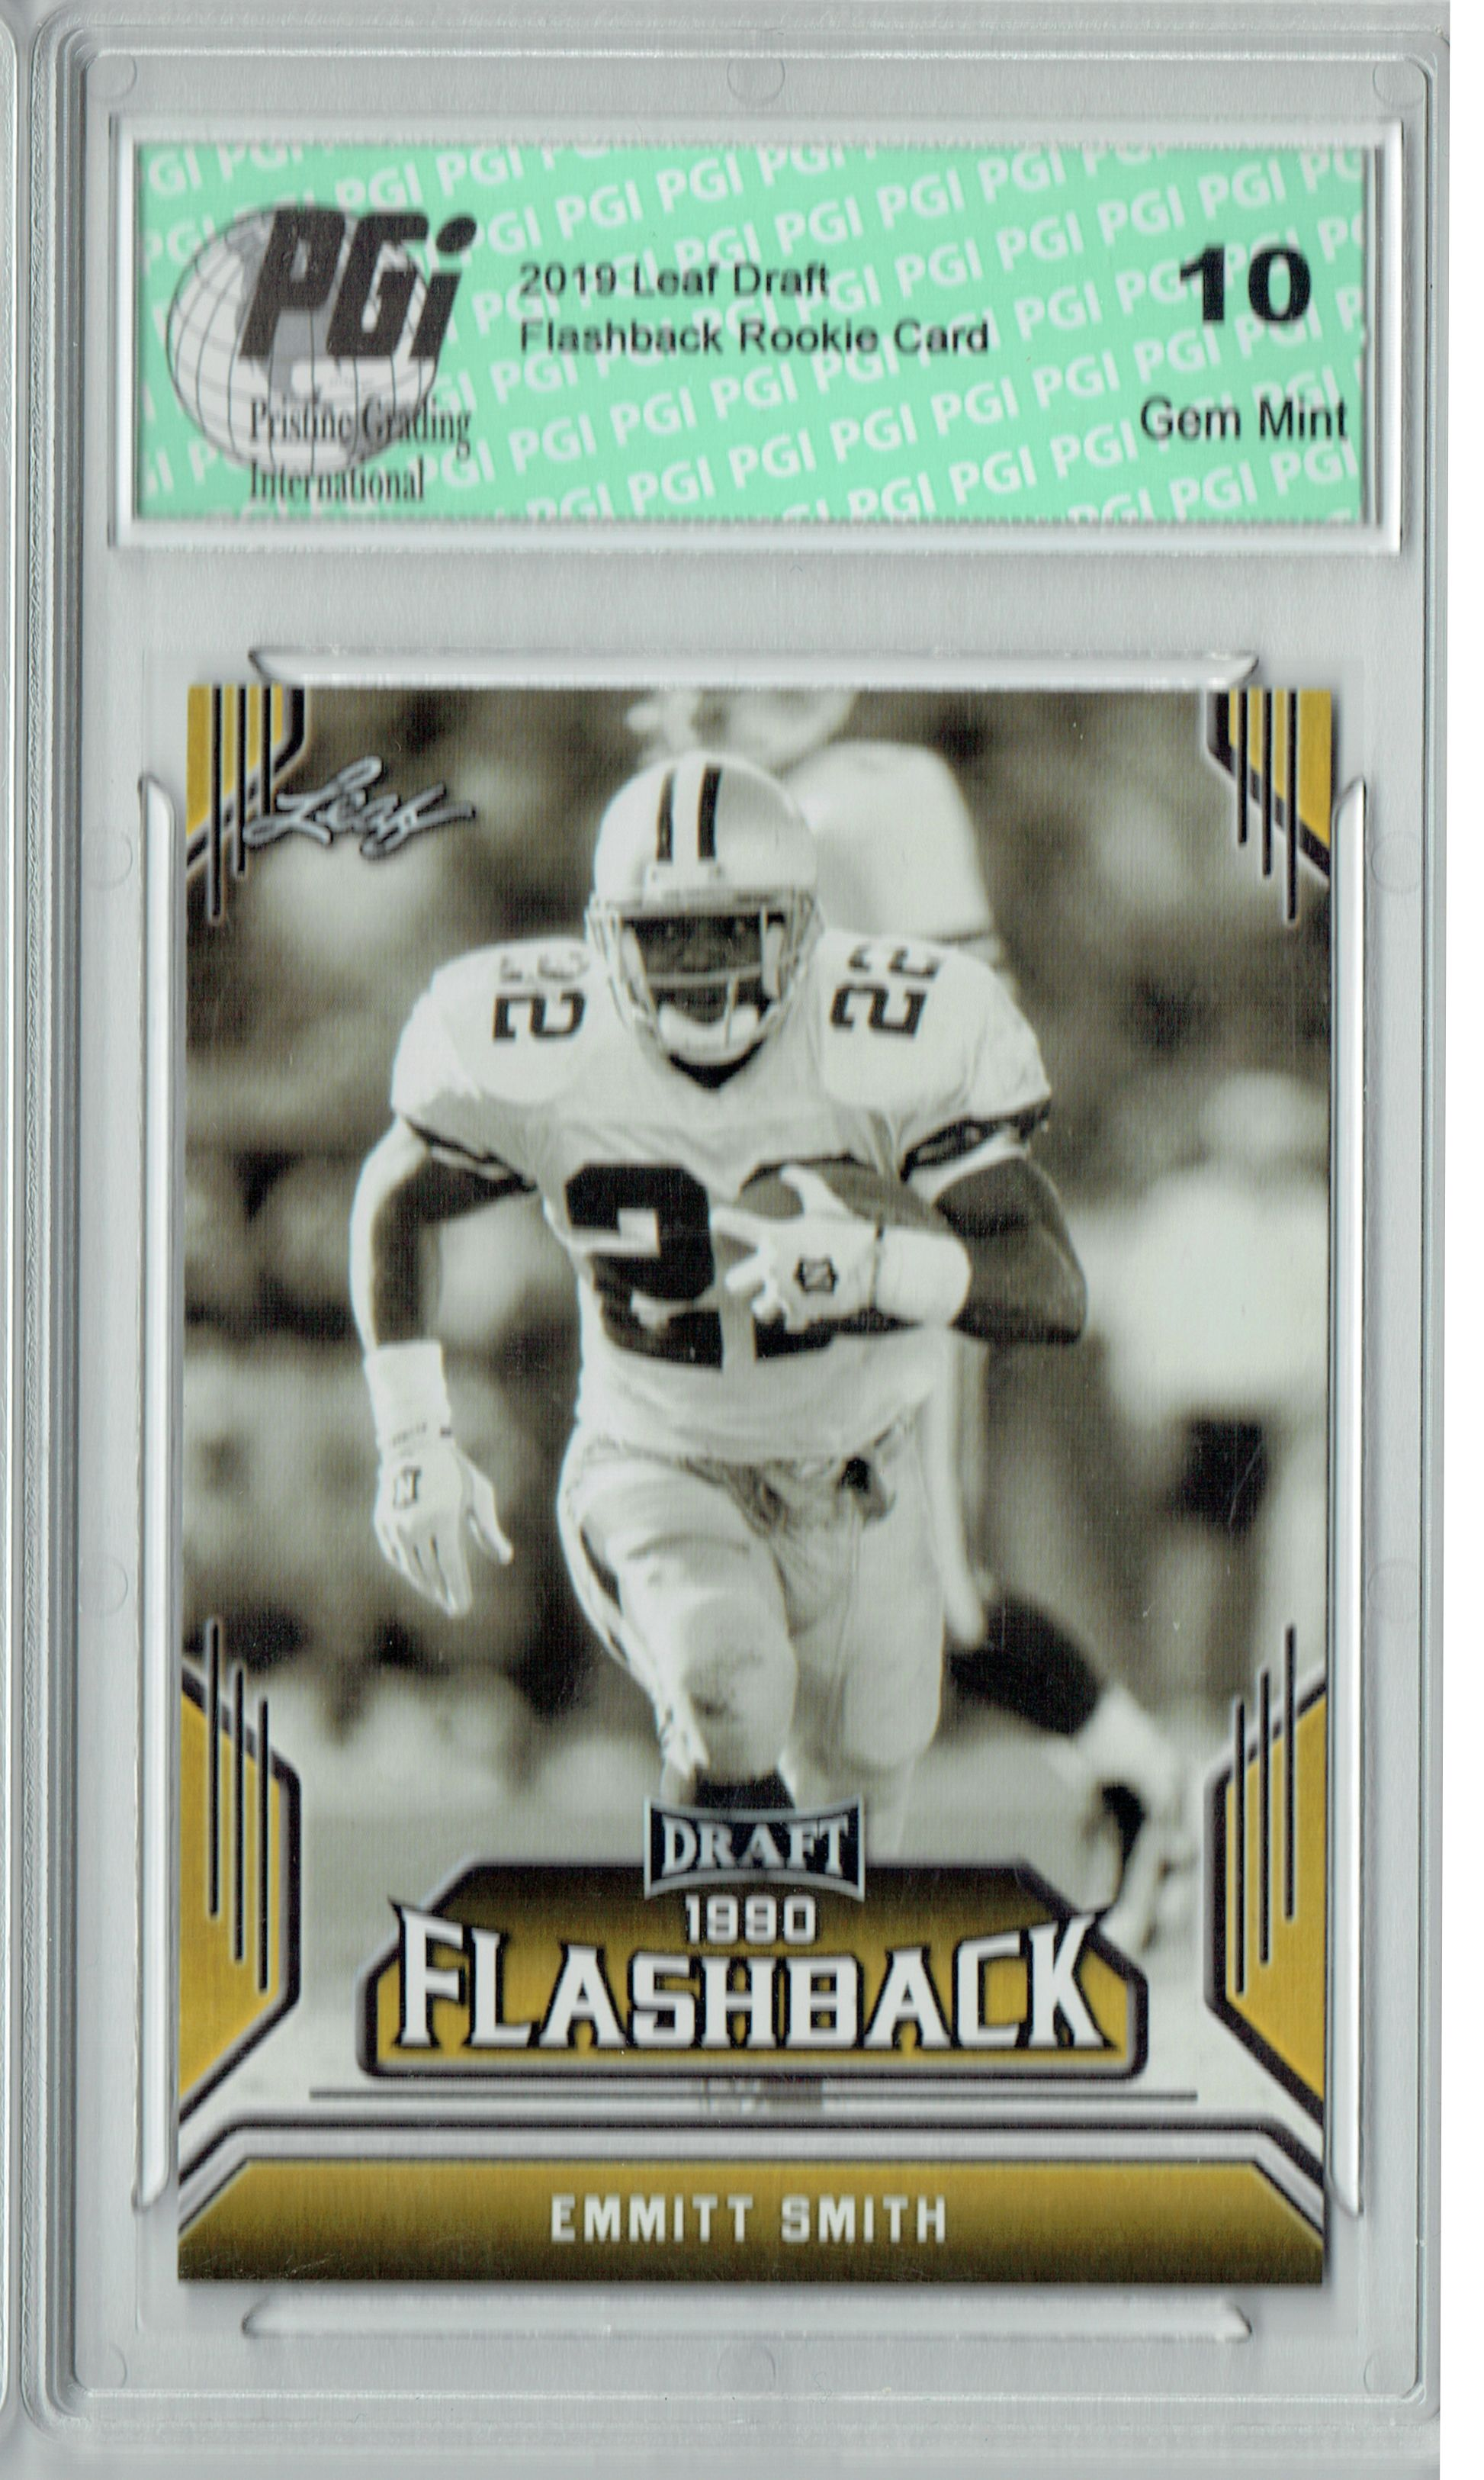 Emmitt Smith 2019 Leaf Draft 06 Gold Flashback Rookie Card Pgi 10